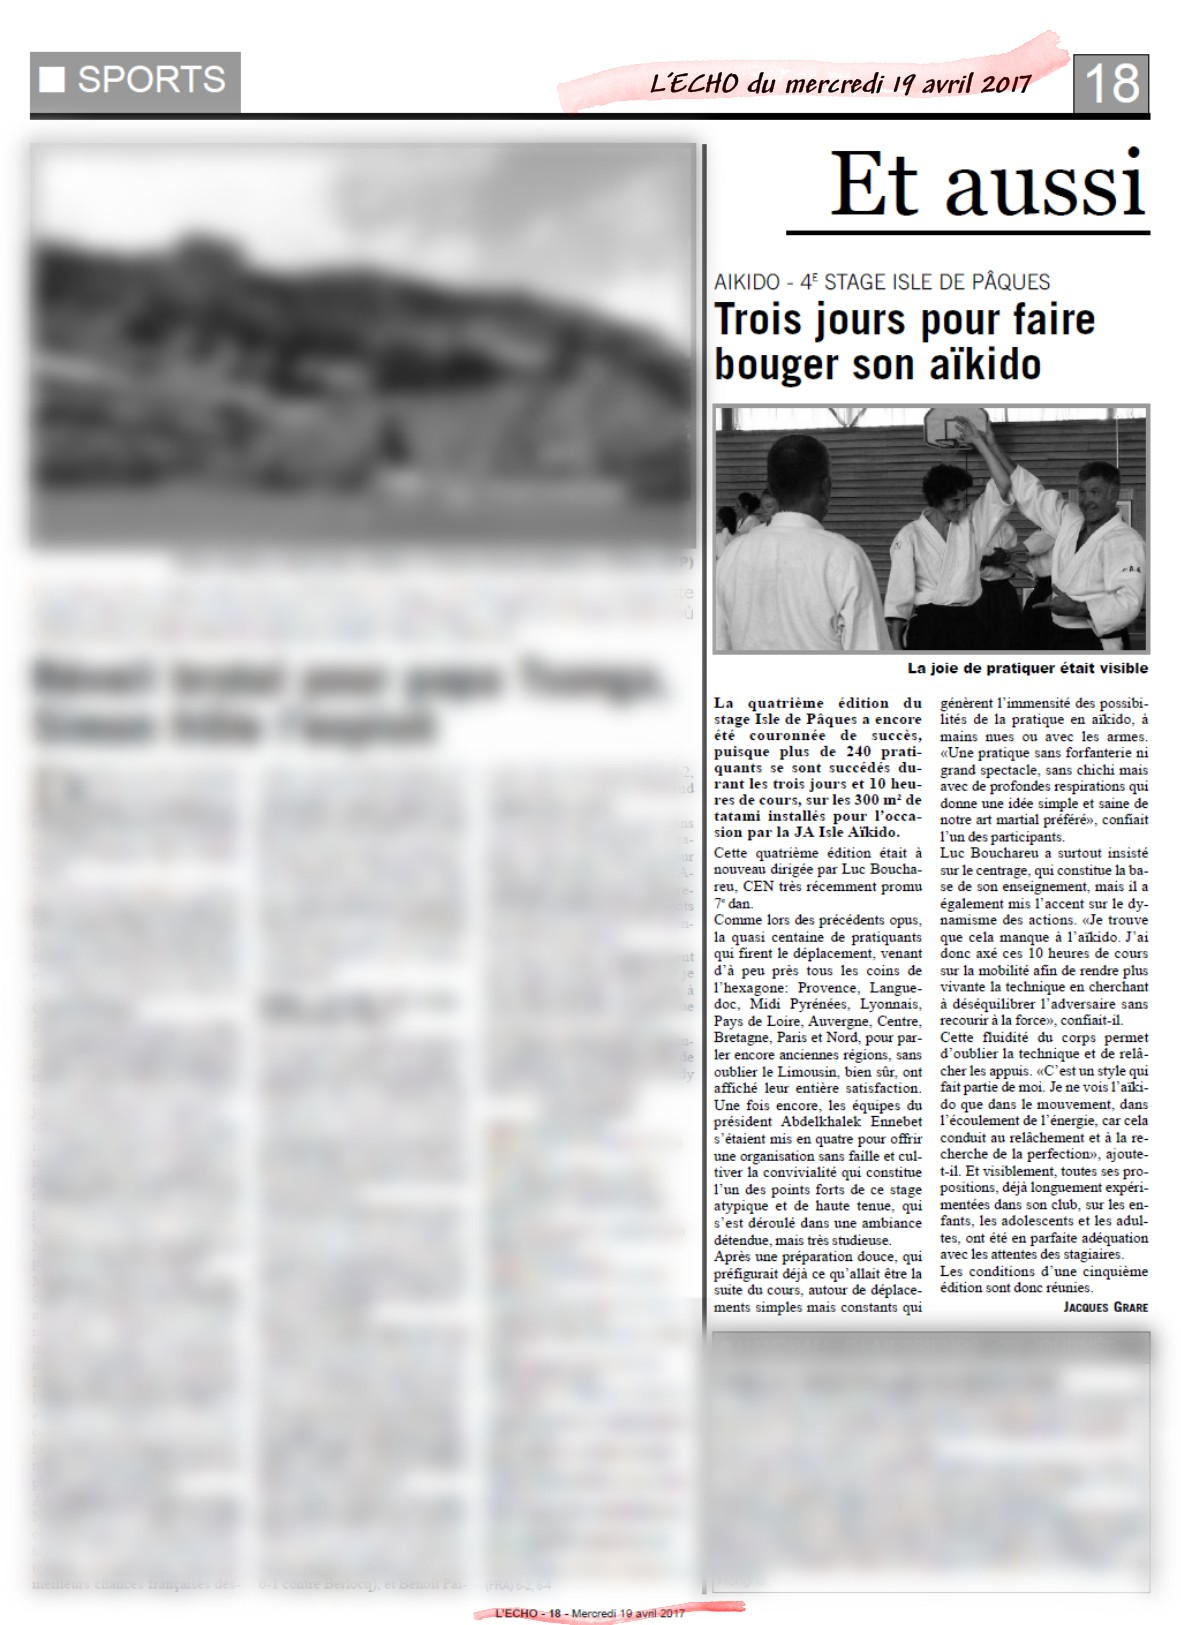 170415_17 Art Echo du merc 19 avril 2017 p18.jpg - 335.36 kB